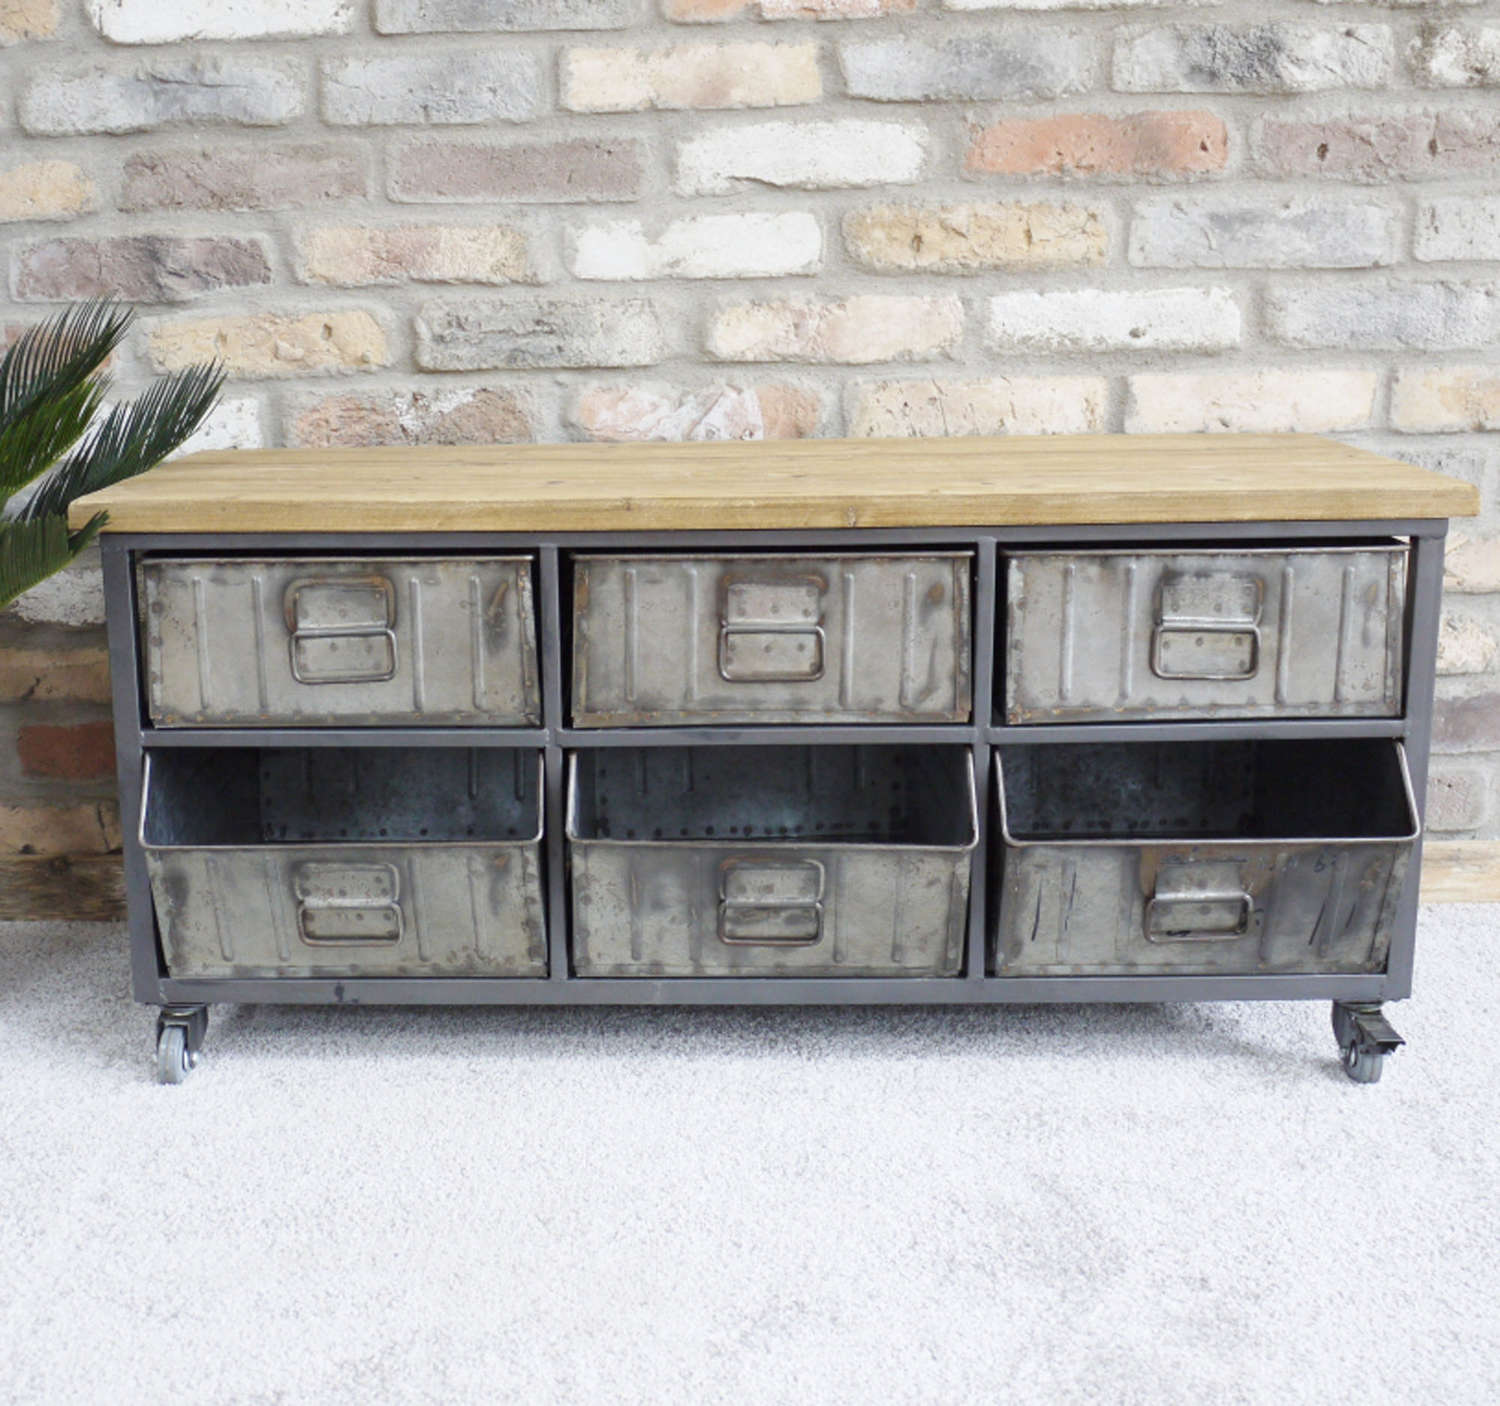 Industrial cabinet on wheels with metal drawers